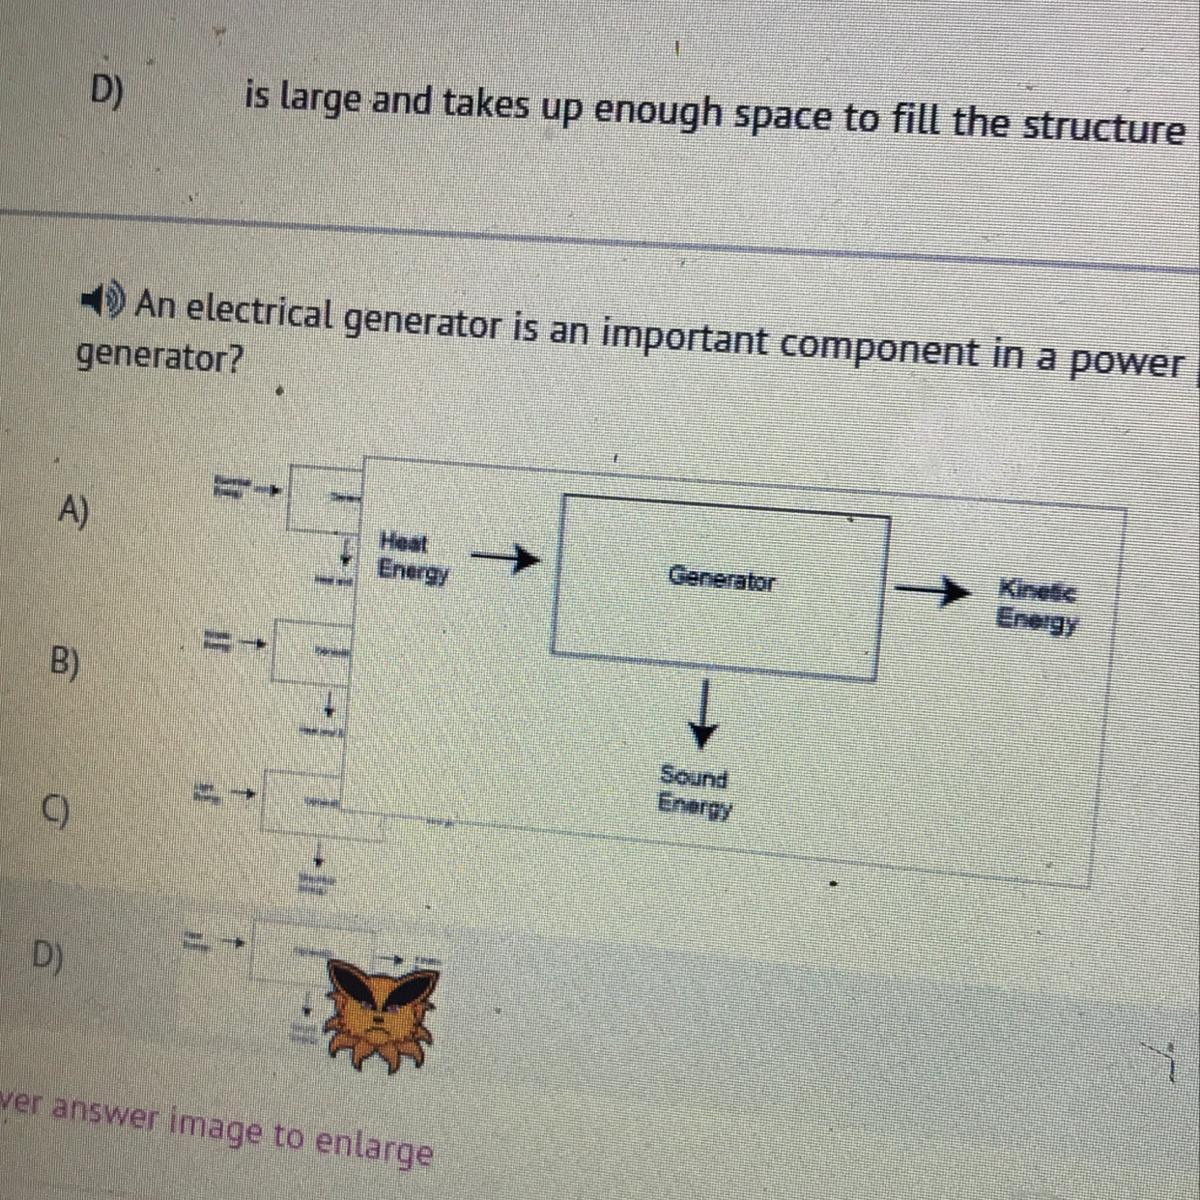 hight resolution of an electrical generator is an important component in a power plant which best shows the energy transfer diagram for a generator